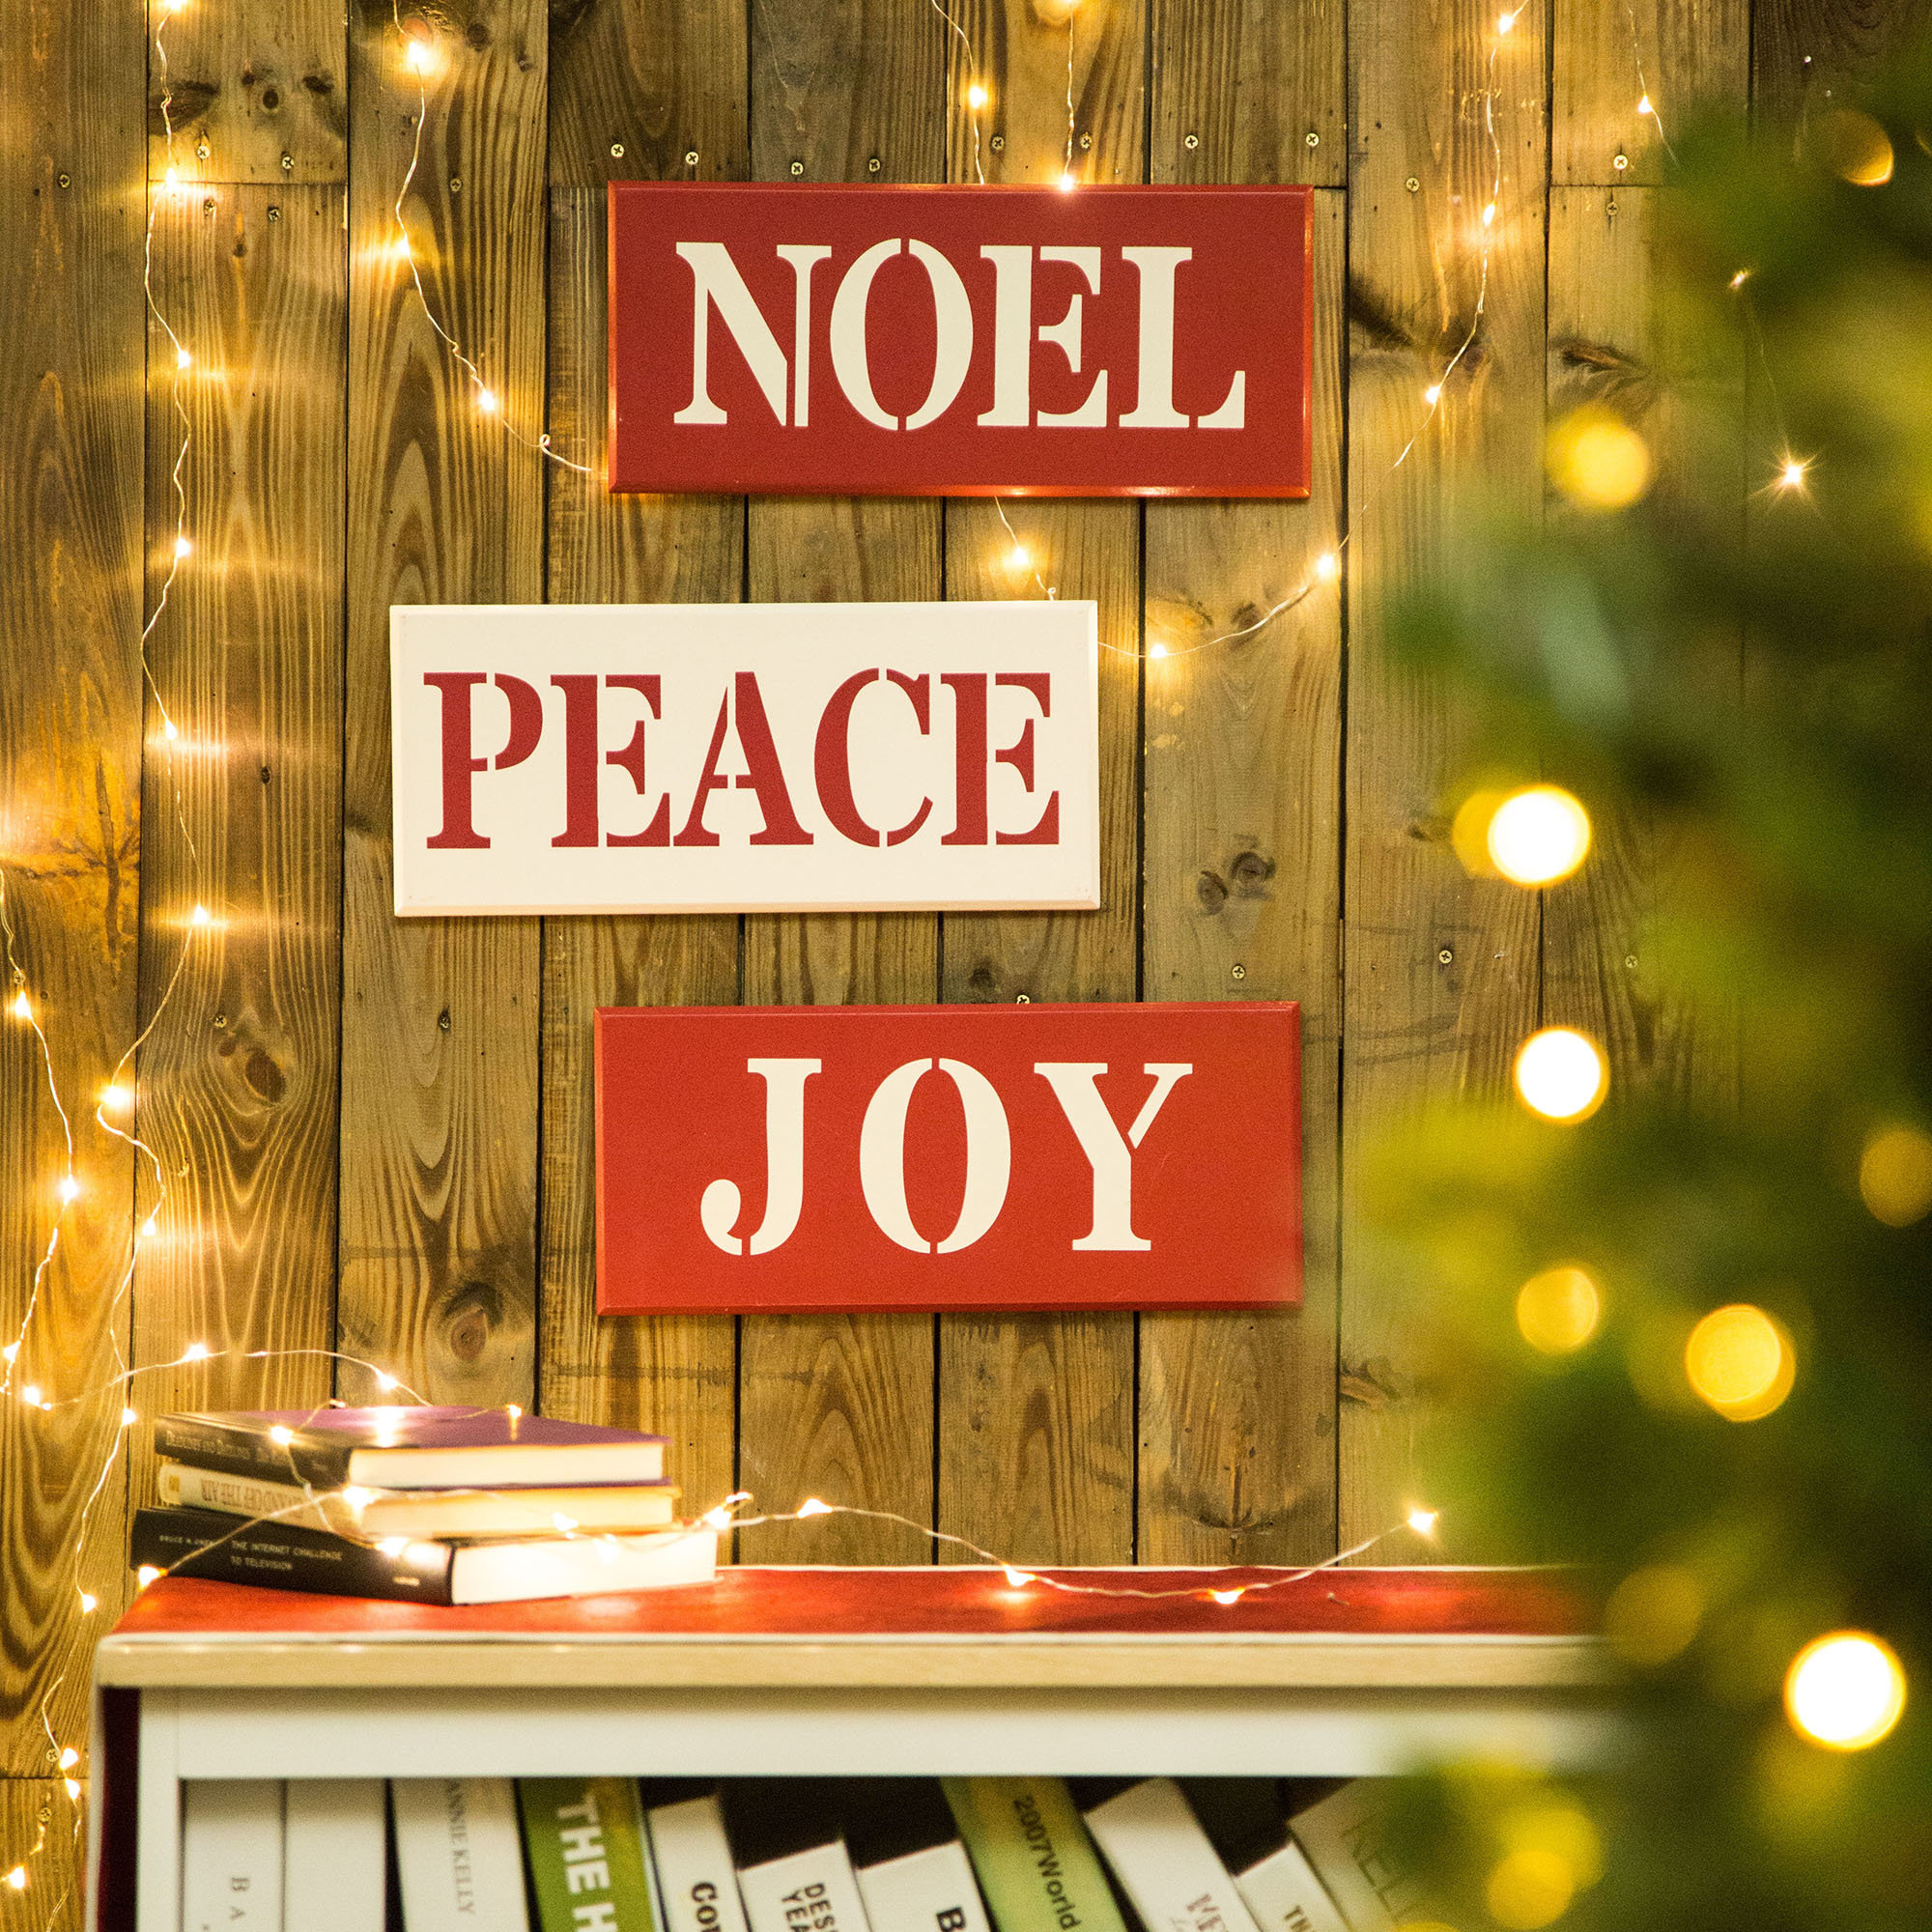 """""""joy Noel Peace"""" Wall Décor Intended For Rioux Birds On A Wire Wall Decor (View 13 of 30)"""